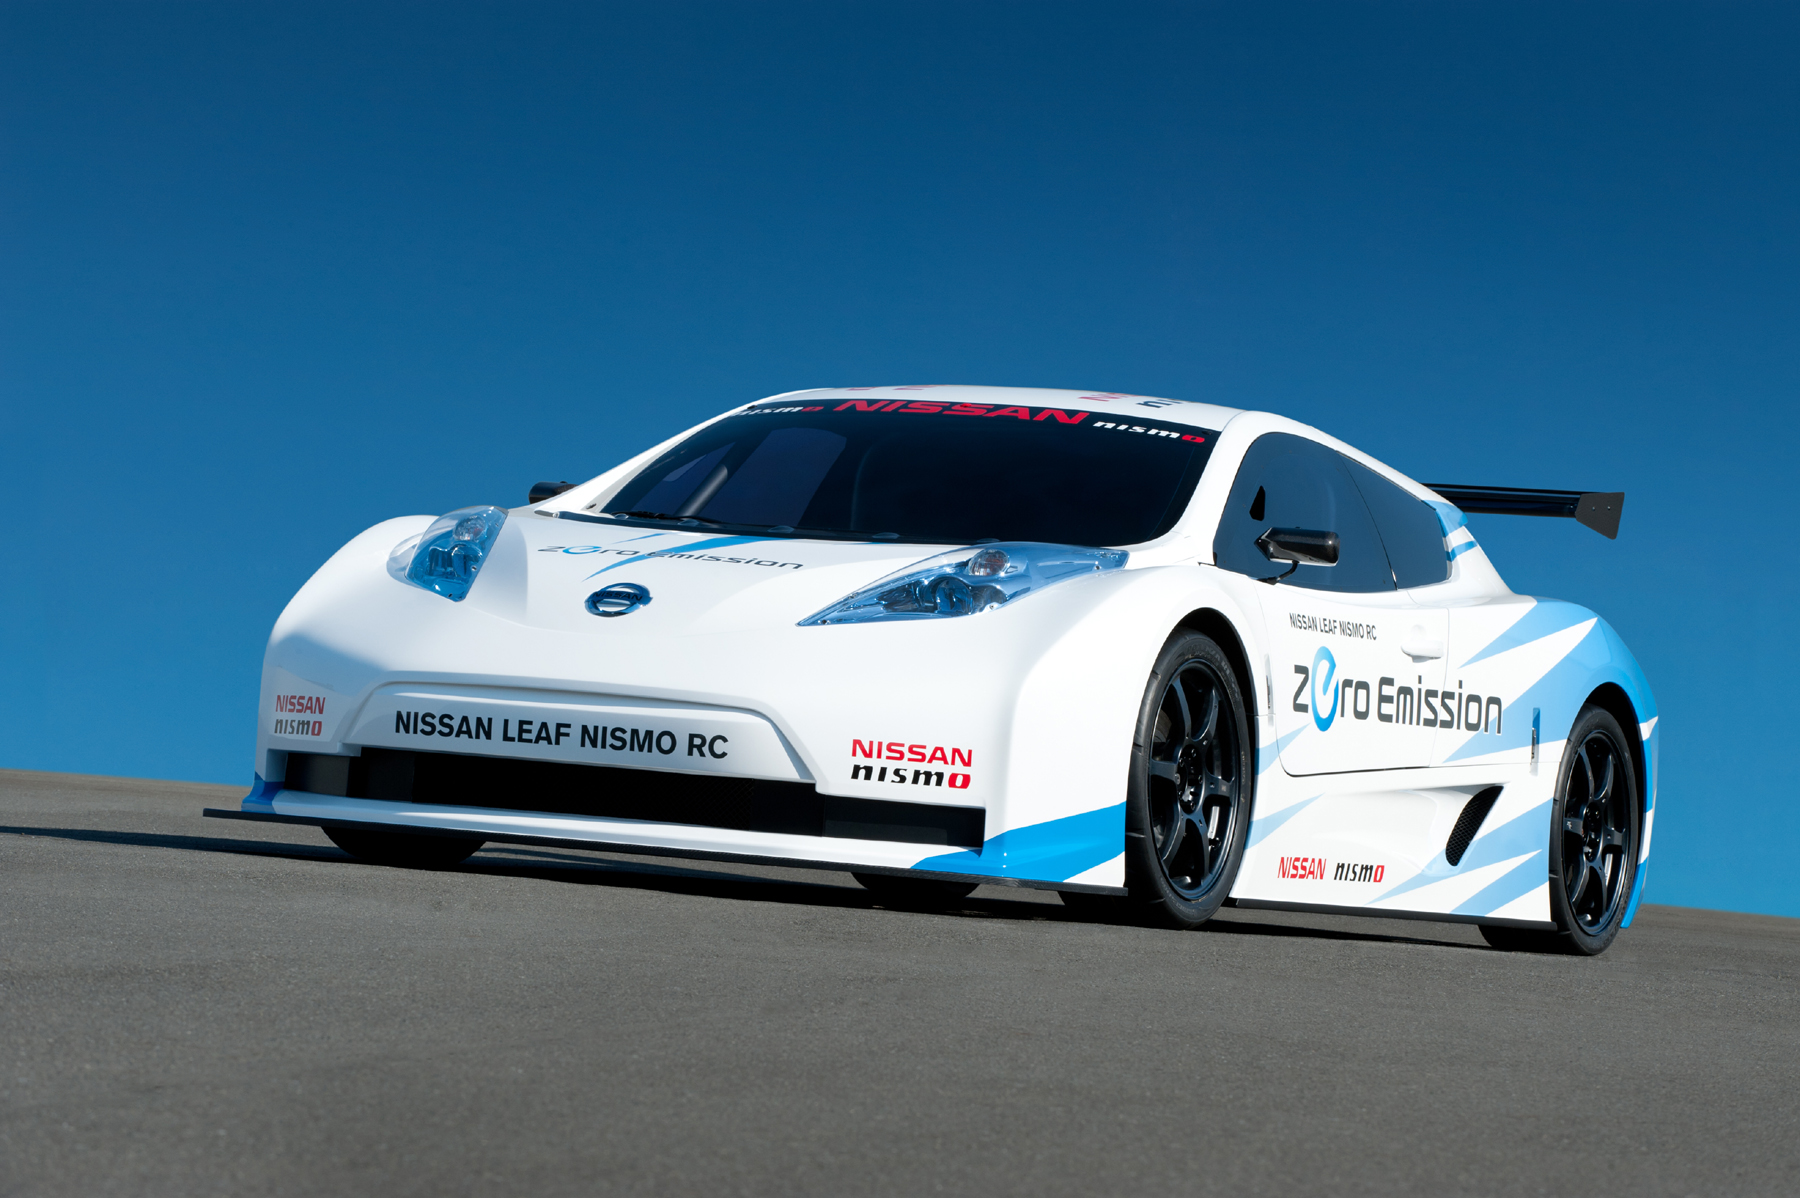 Manufacturer photo: The Nissan Leaf Nismo RC uses the same motor and battery as the consumer Leaf, but in a more aerodynamic design with a spoiler and race-size tires